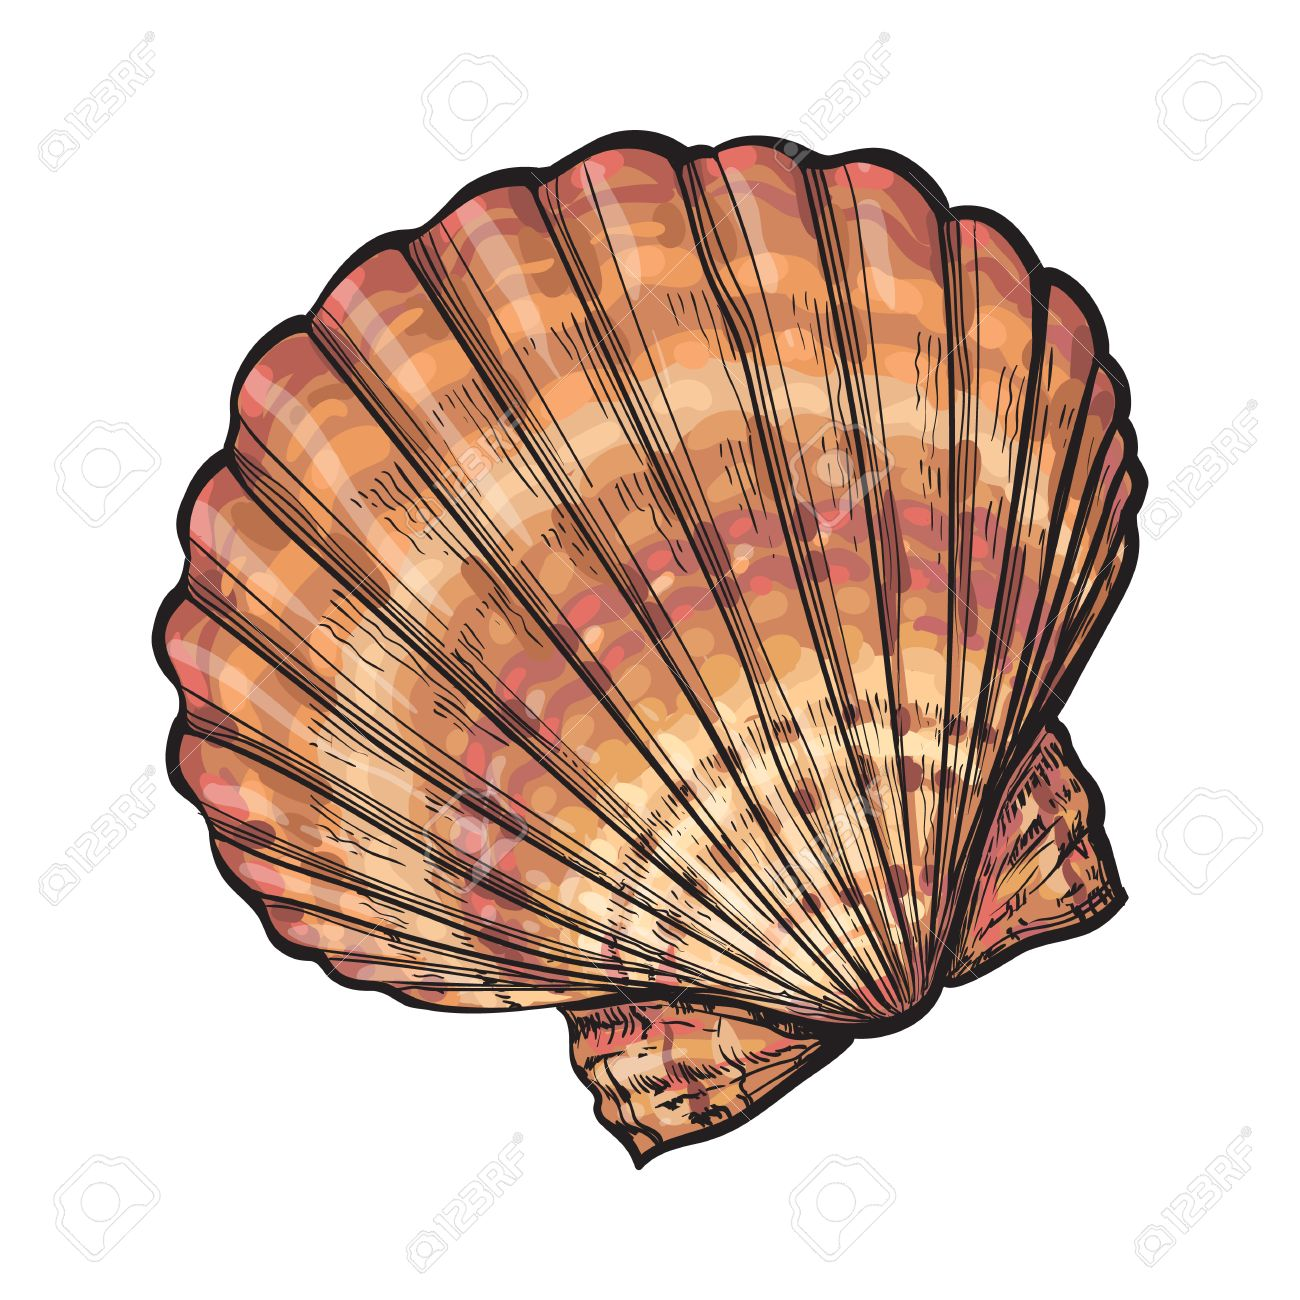 1300x1300 Colorful Scallop Sea Shell, Sketch Style Vector Illustration